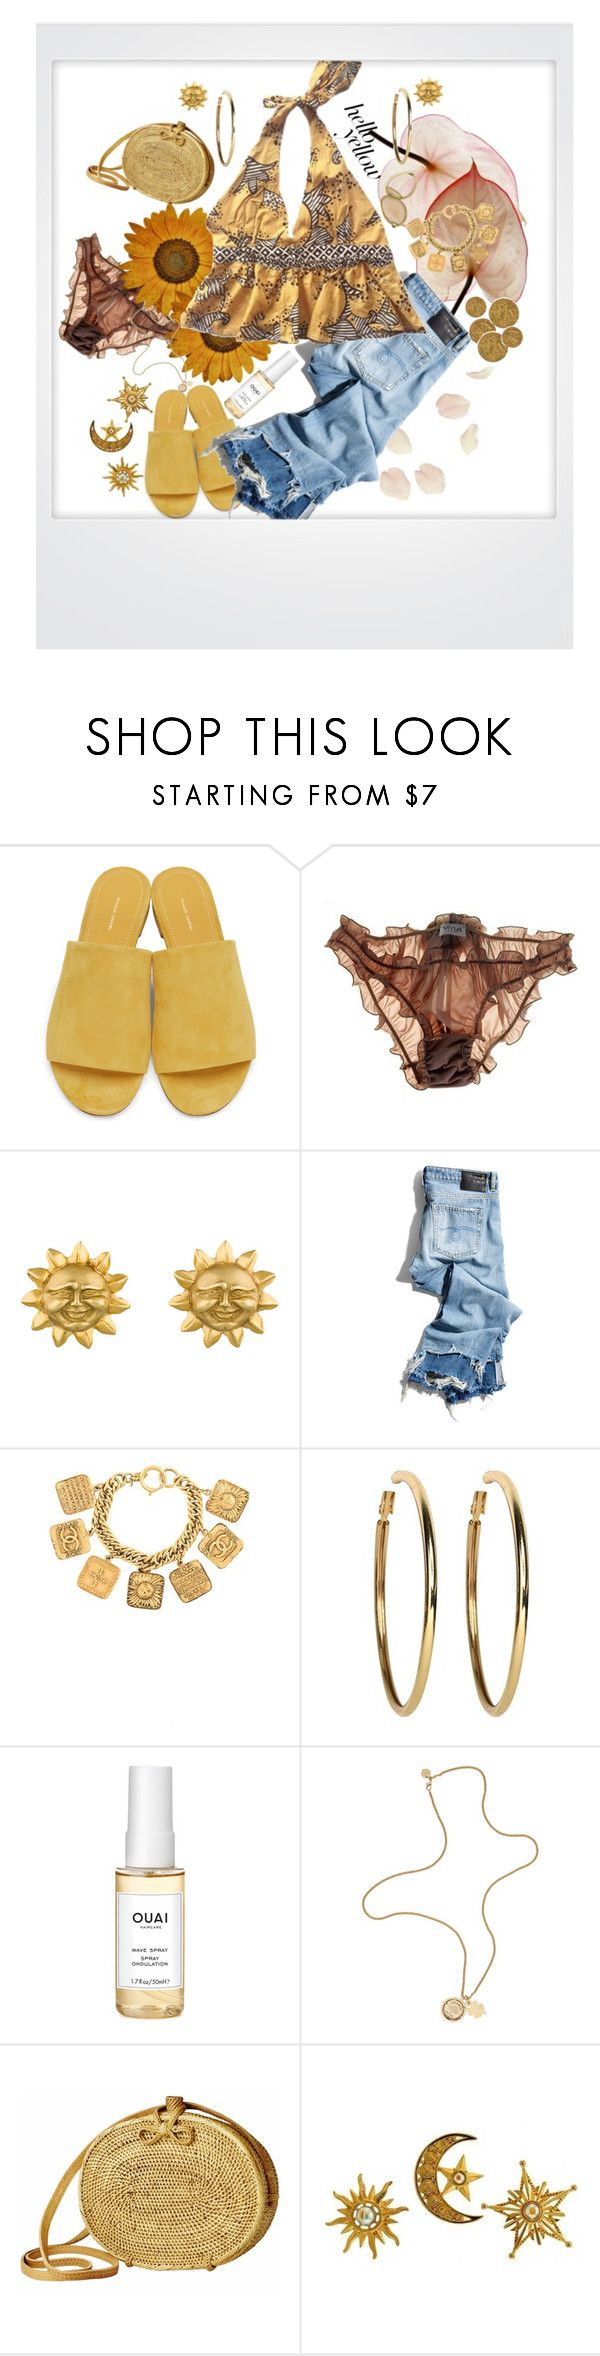 """""""Yellow day"""" by piizzza ❤ liked on Polyvore featuring Mansur Gavriel, Myla, R13, Chanel, Kenneth Jay Lane, Ouai, Mulberry, Polaroid, PopsOfYellow and NYFWYellow"""